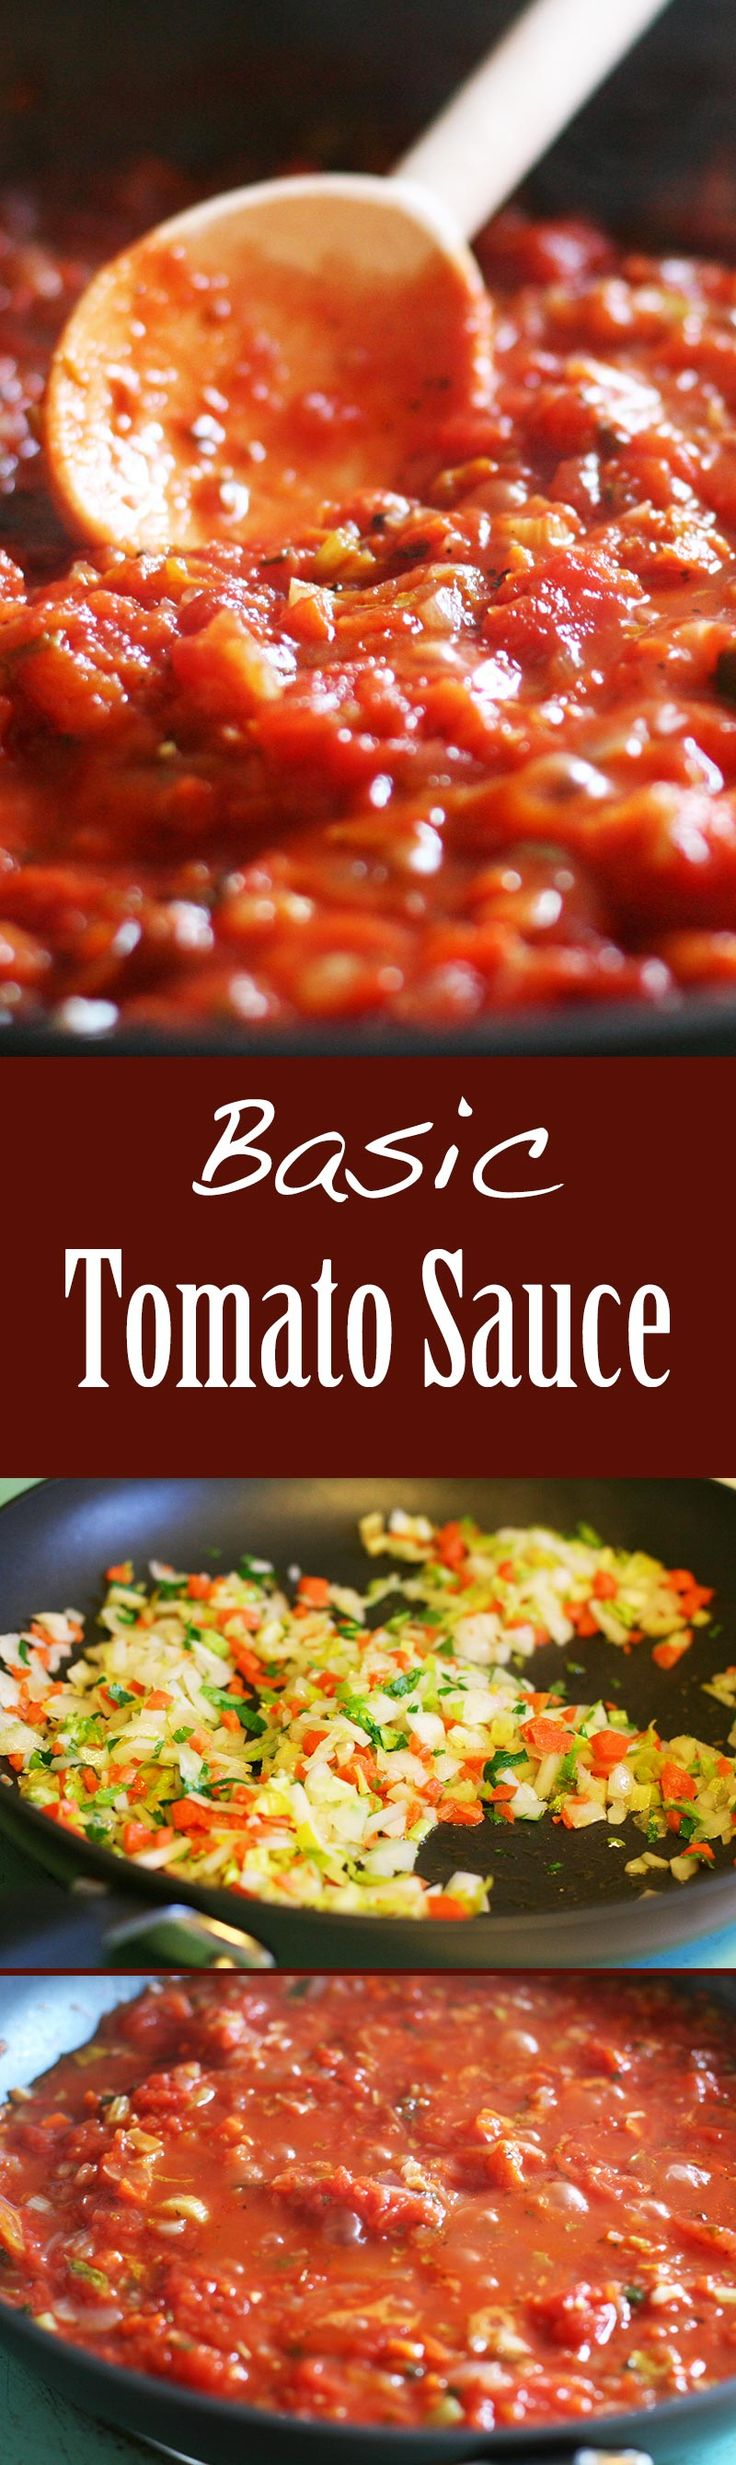 A great tomato sauce is the basis for so many dishes! Use for pizza, pasta, chicken, or fish. Here's a classic marinara sauce, chunky or smooth. So easy to make your own and better than store bought! Gluten free and vegan. On SimplyRecipes.com